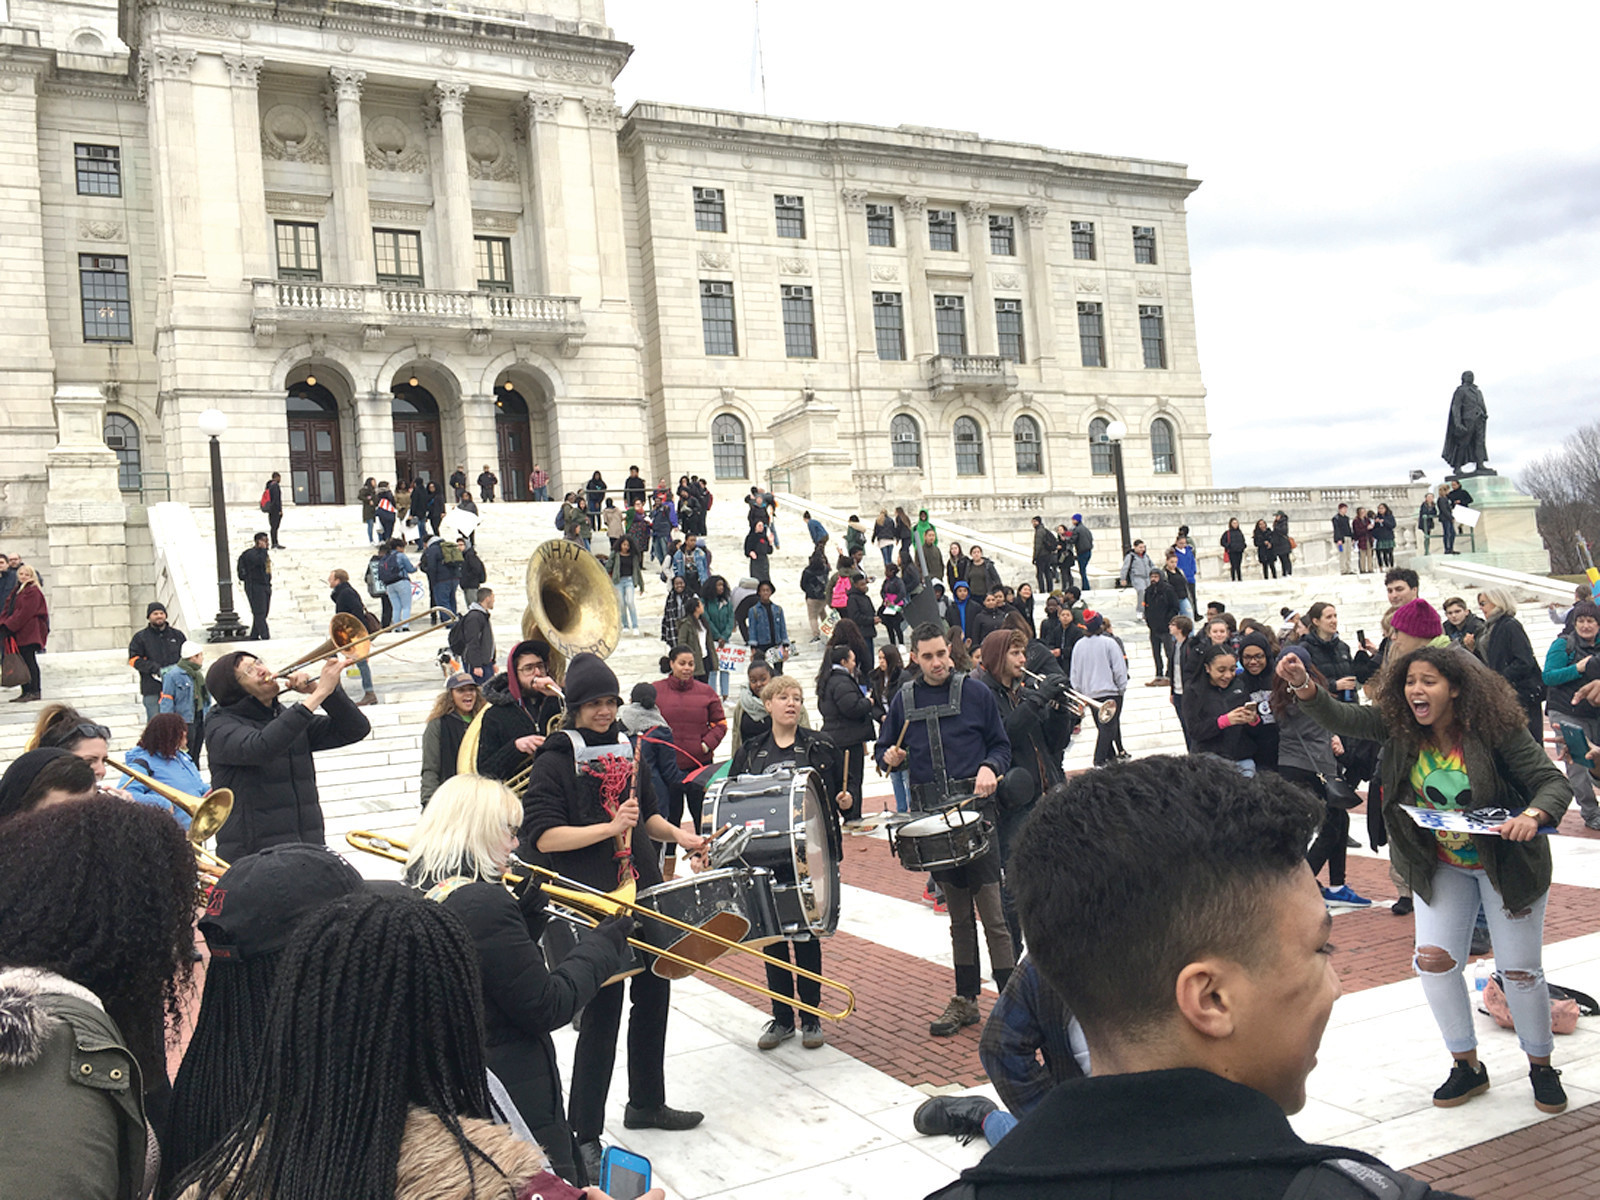 EXPRESSIONS OF HOPE: A band plays and students dance in front of the State House.